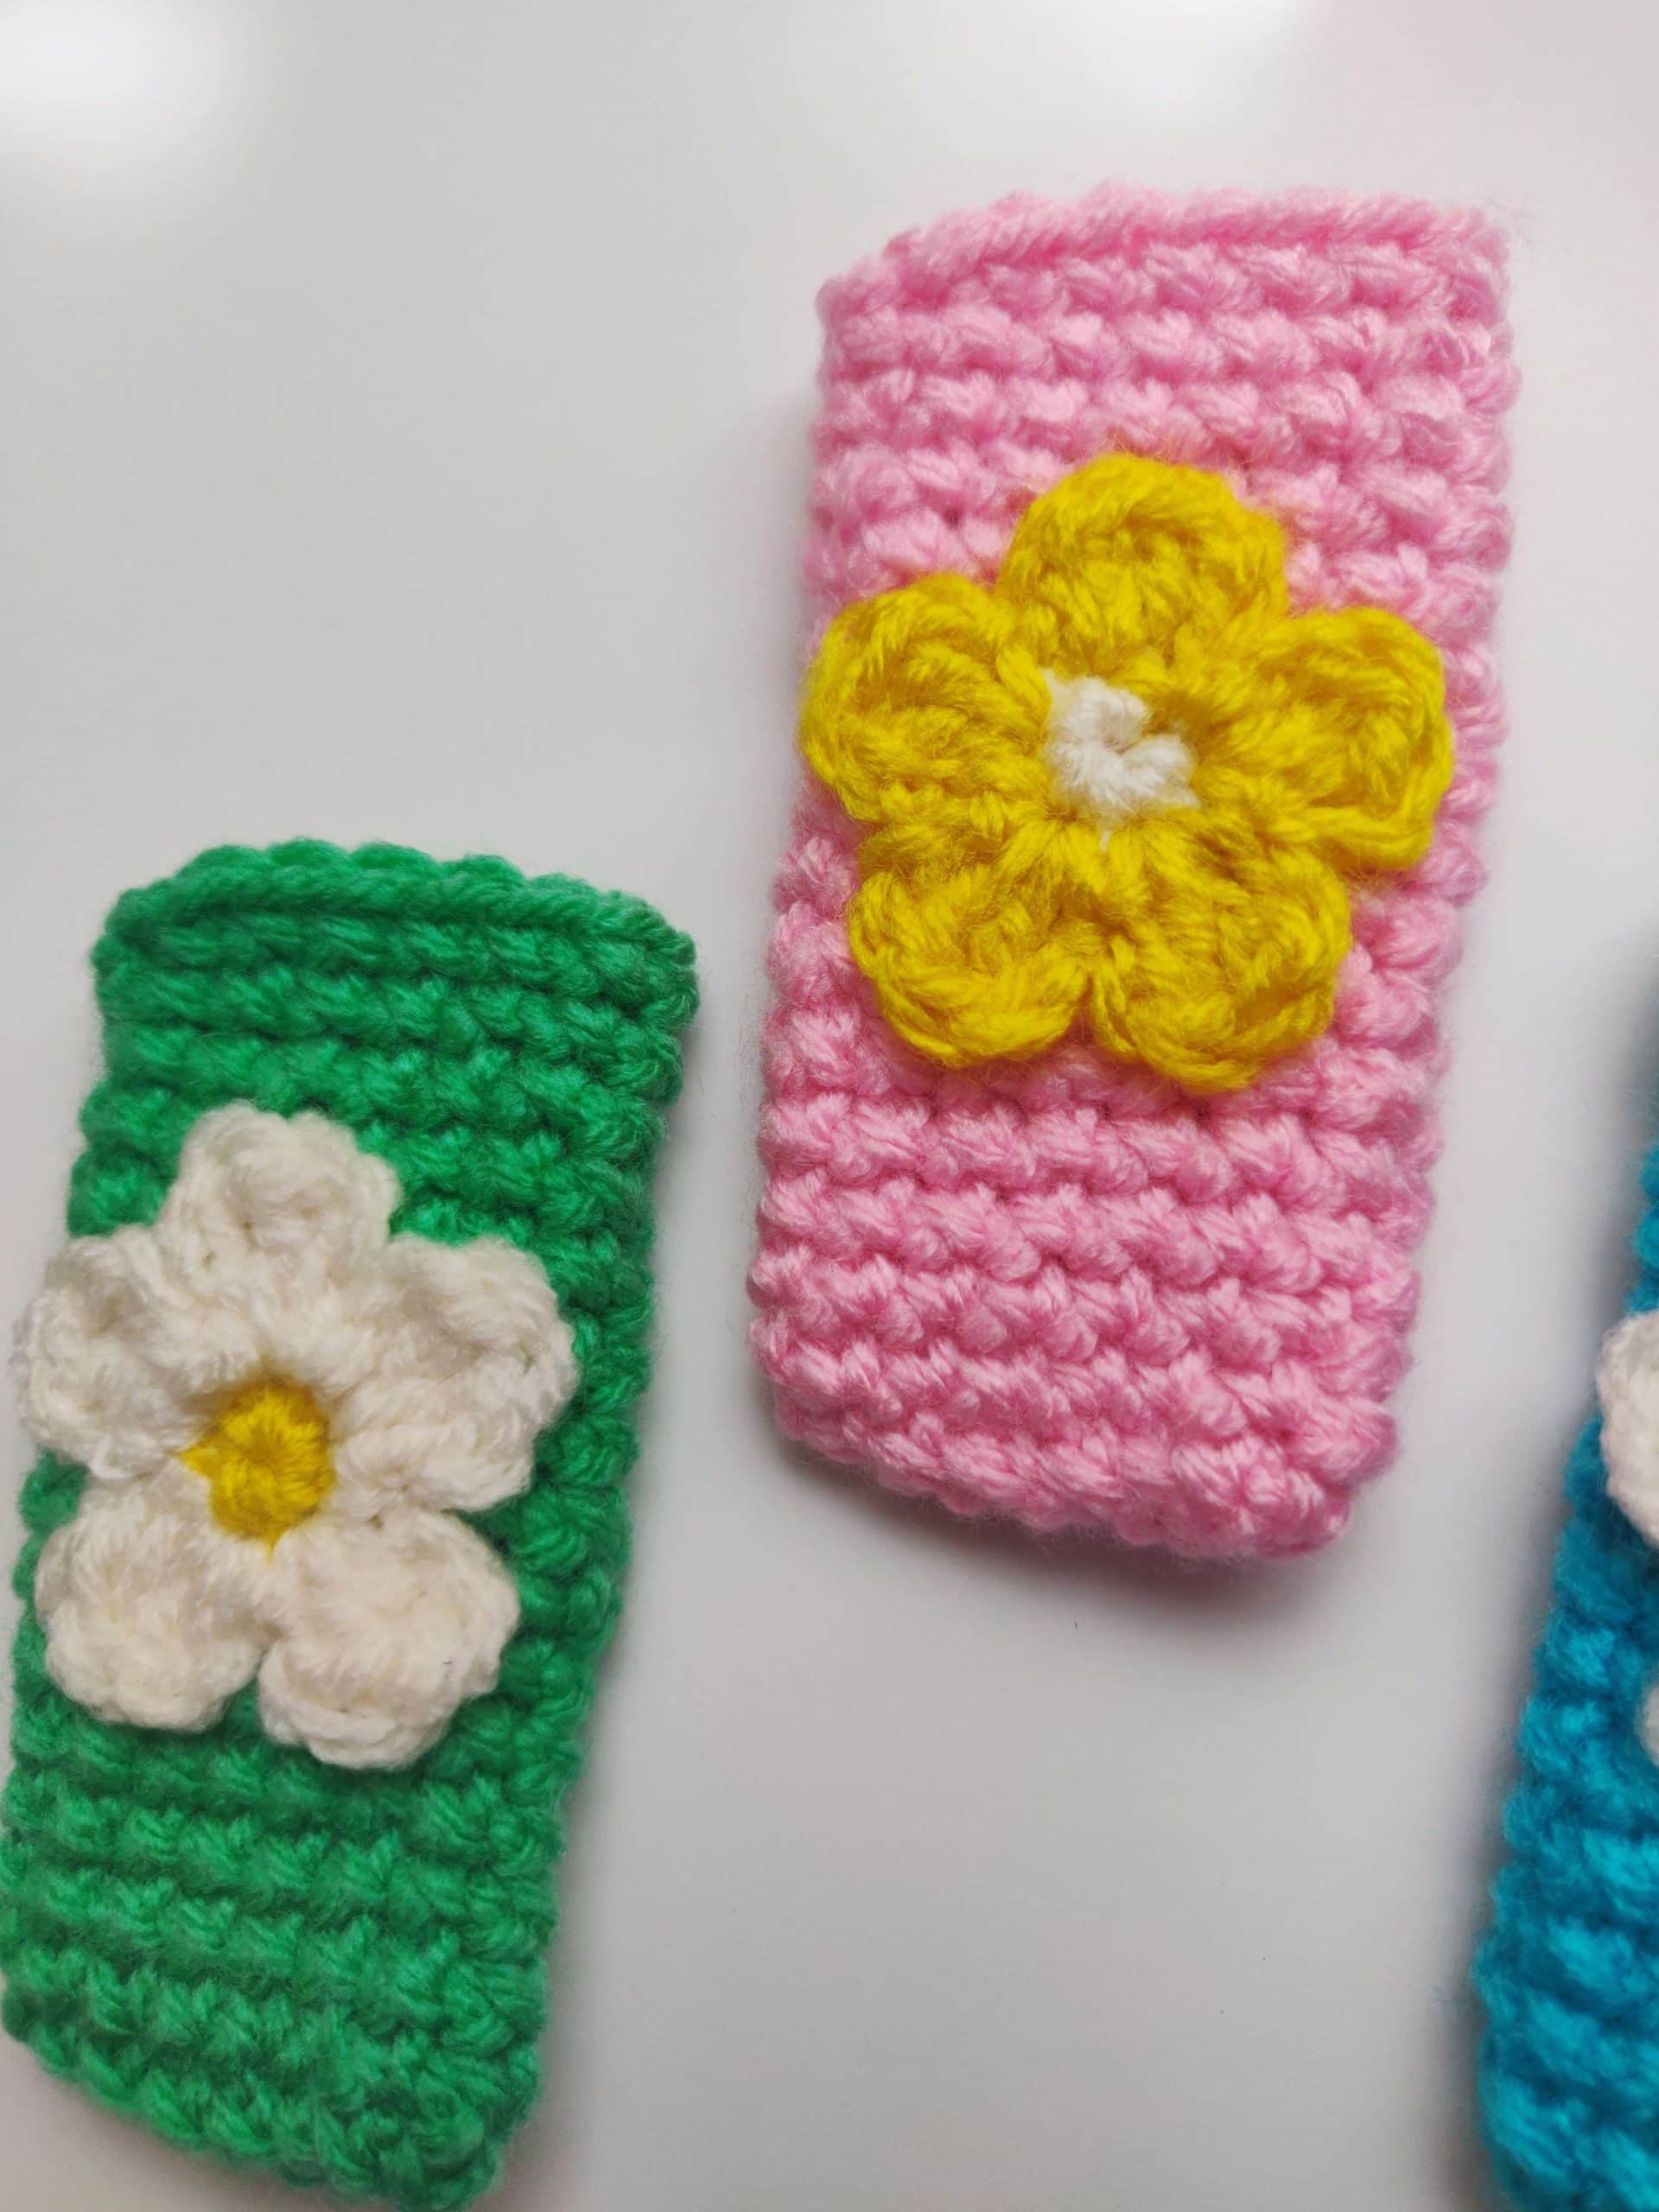 Pink and green crochet popsicle holder with flower in the middle.